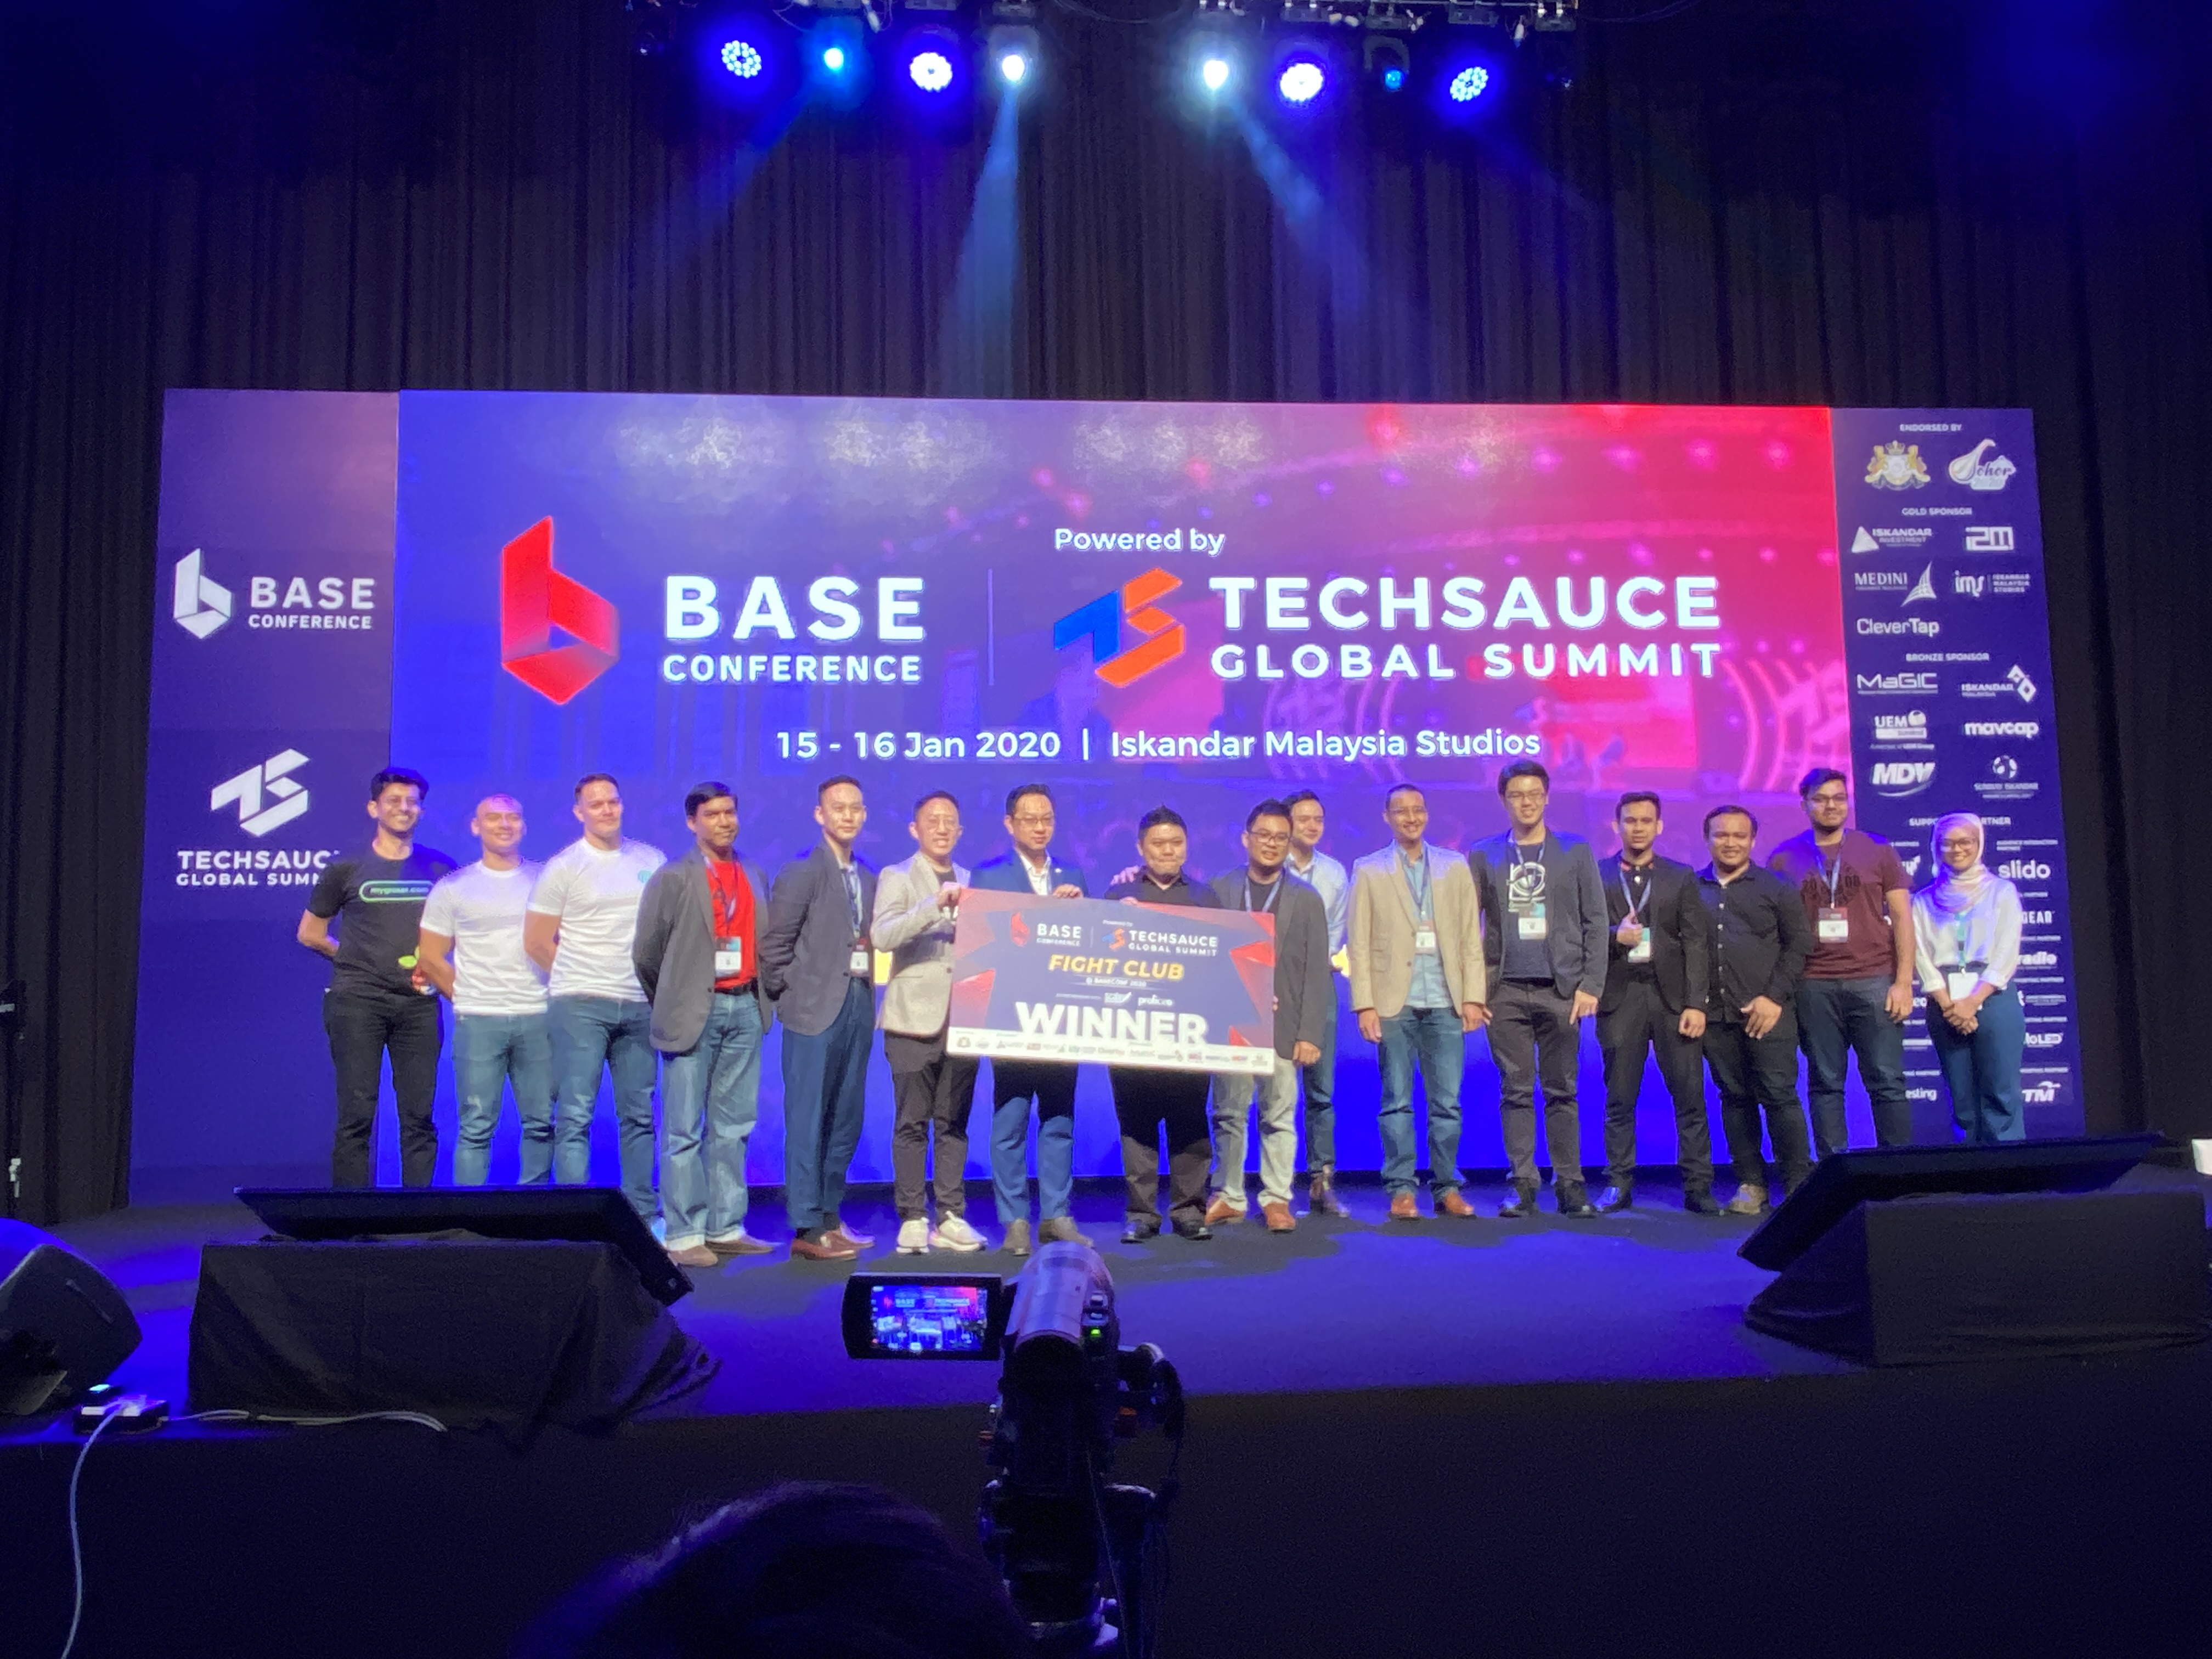 SmartPeep has made it to the Top 8 of the Startups Fight Club at the BASE Conference 2020